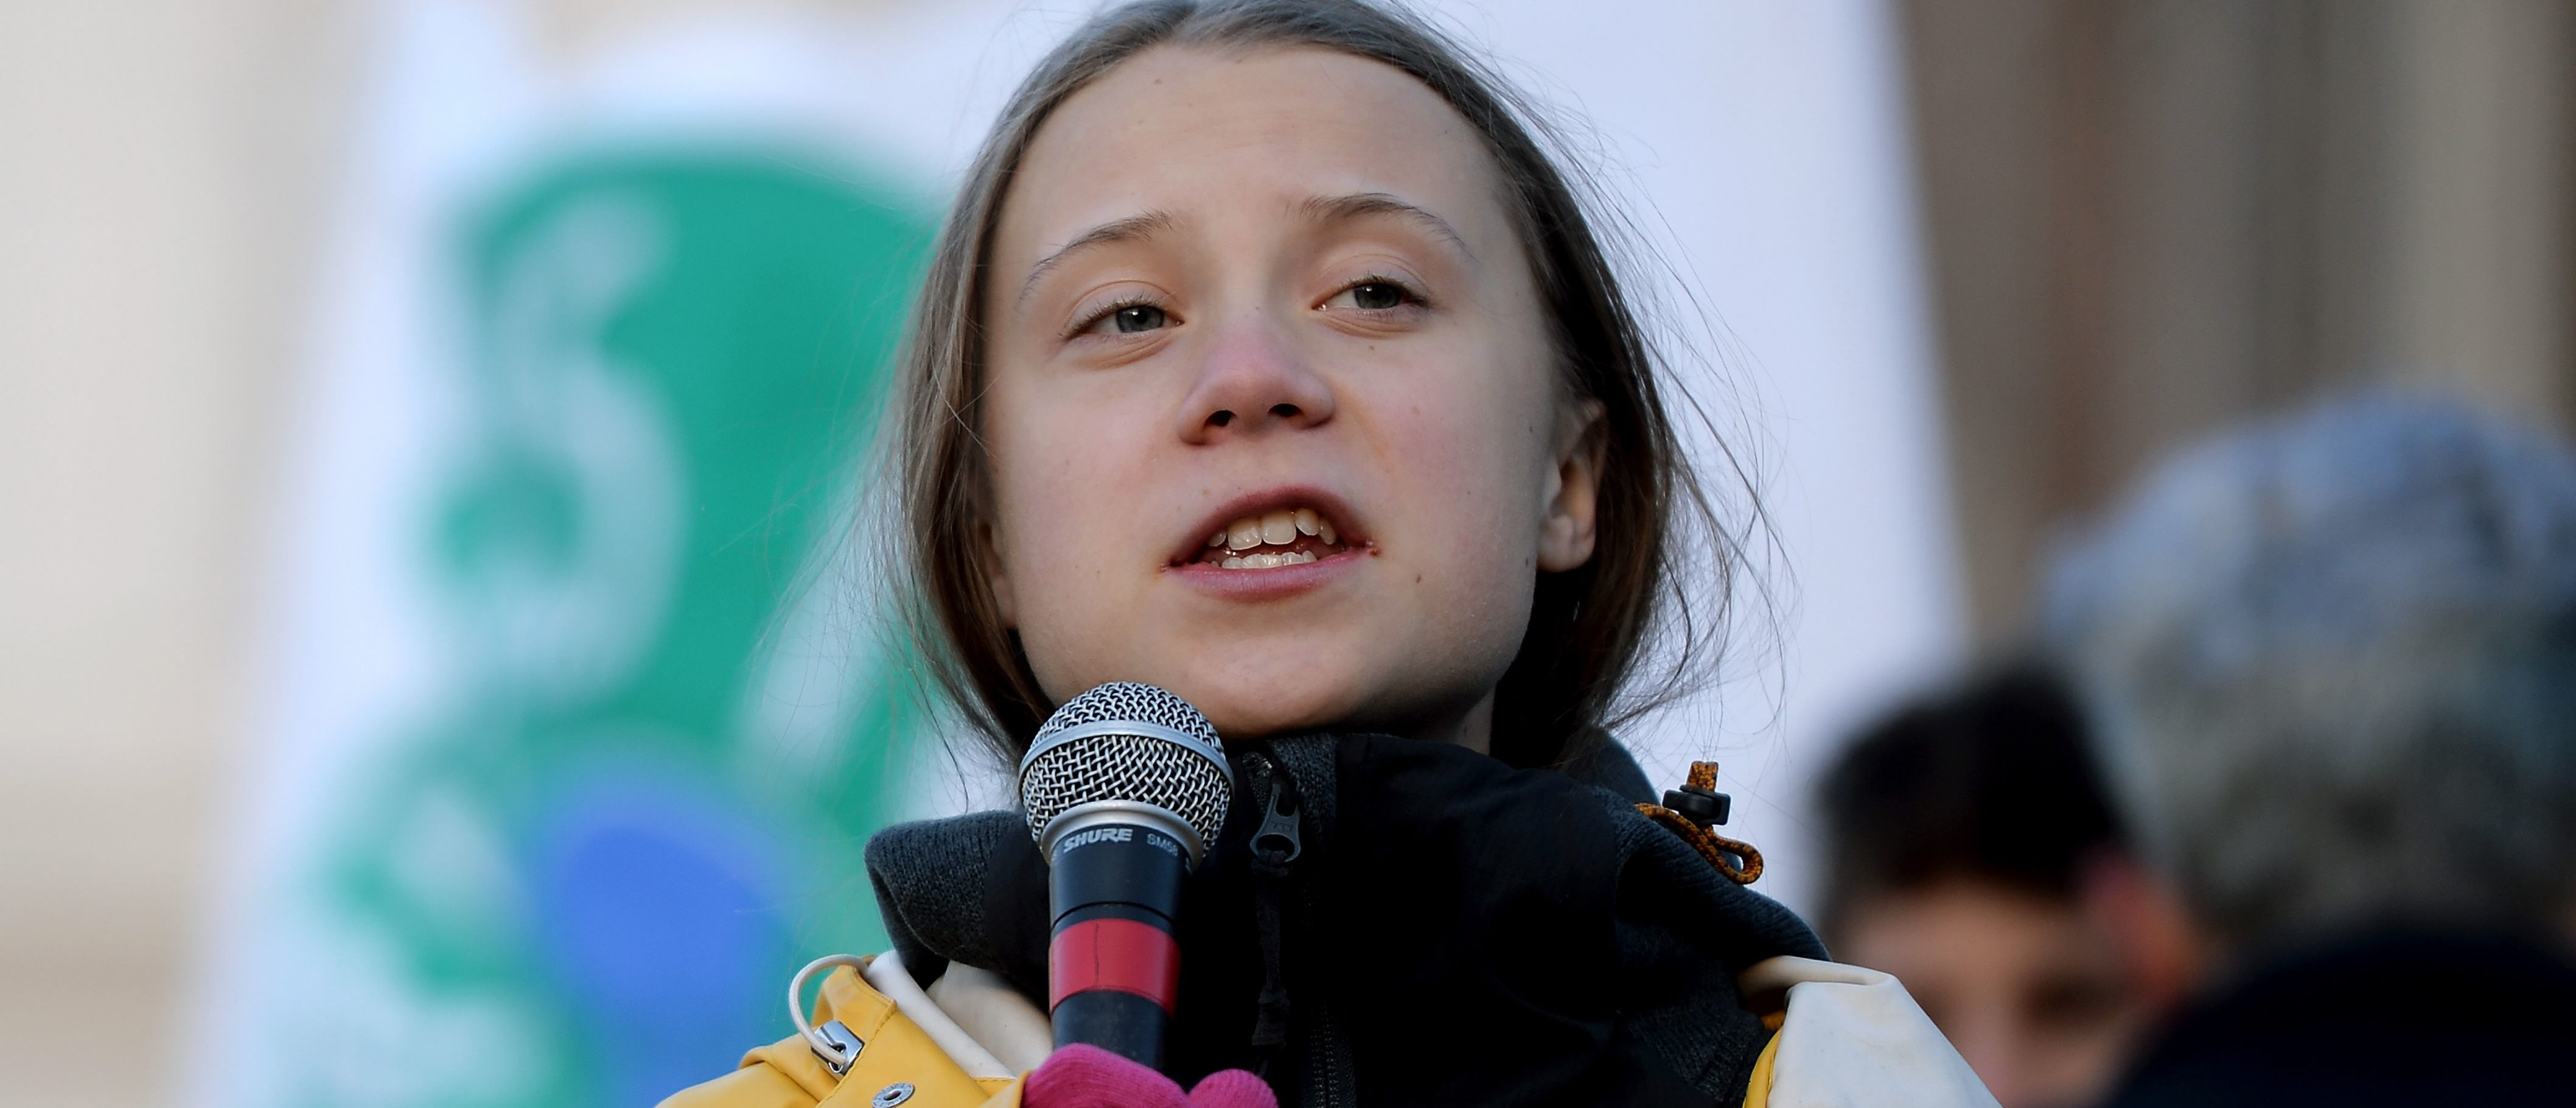 Swedish climate activist Greta Thunberg gives a speech during the Friday for Future strike on climate emergency, in Turin, on December 13, 2019. - Greta Thunberg, the teenager who became the voice of a generation facing the climate change emergency, was named Time magazine's 2019 Person of the Year. Unknown to the world when she launched a solo strike against global warming in mid-2018, the 16-year-old has since inspired millions in a worldwide movement that saw her tipped as a Nobel laureate. (Photo by Filippo MONTEFORTE / AFP) (Photo by FILIPPO MONTEFORTE/AFP via Getty Images)